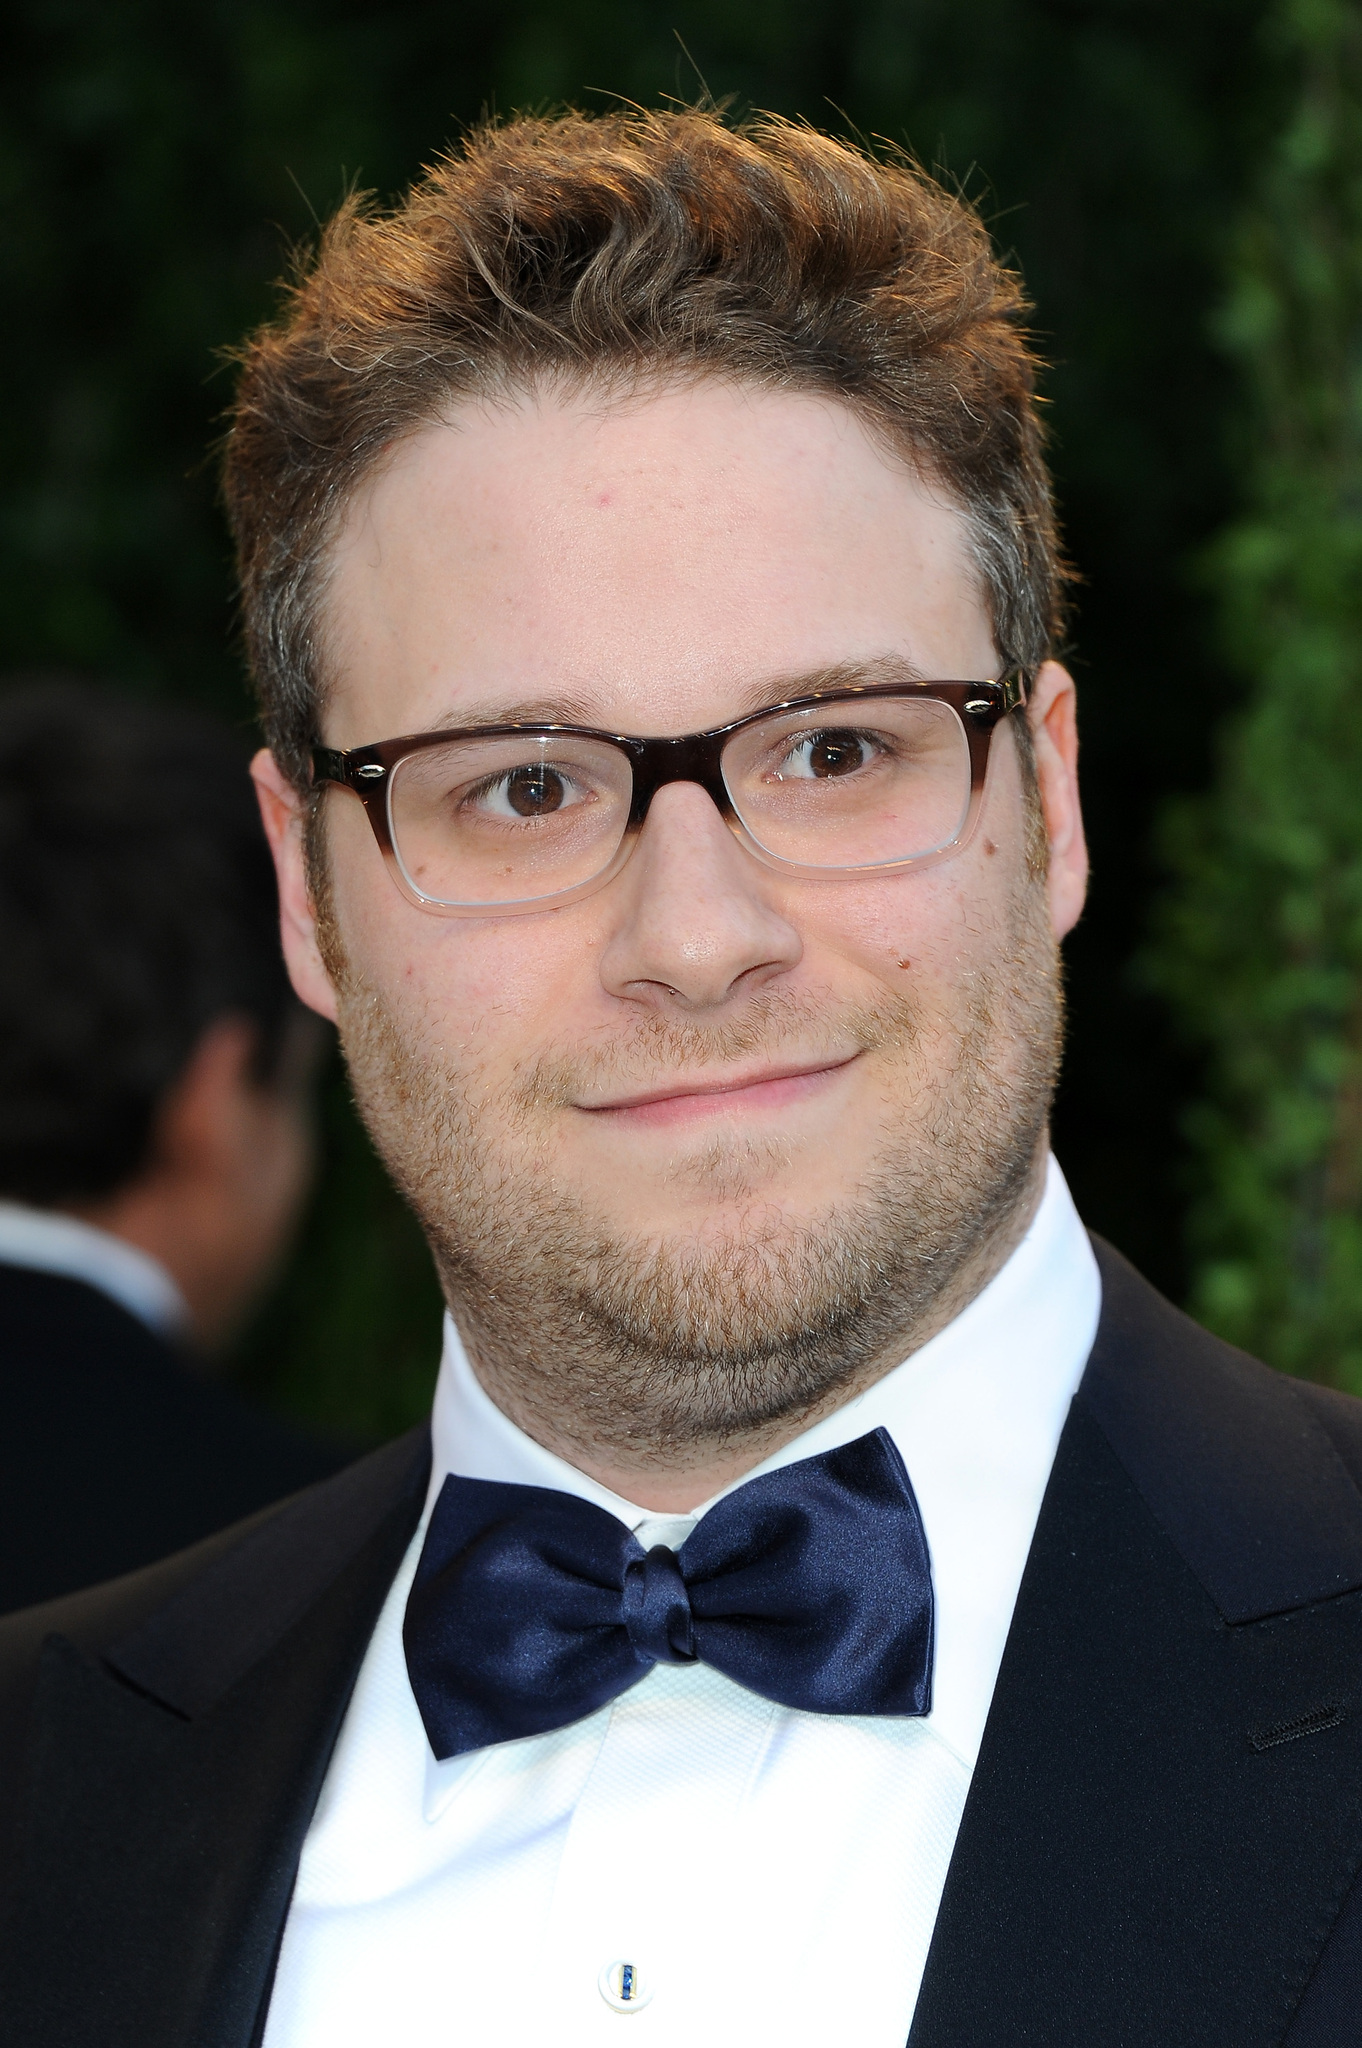 The 38-year old son of father (?) and mother(?) Seth Rogen in 2020 photo. Seth Rogen earned a million dollar salary - leaving the net worth at million in 2020